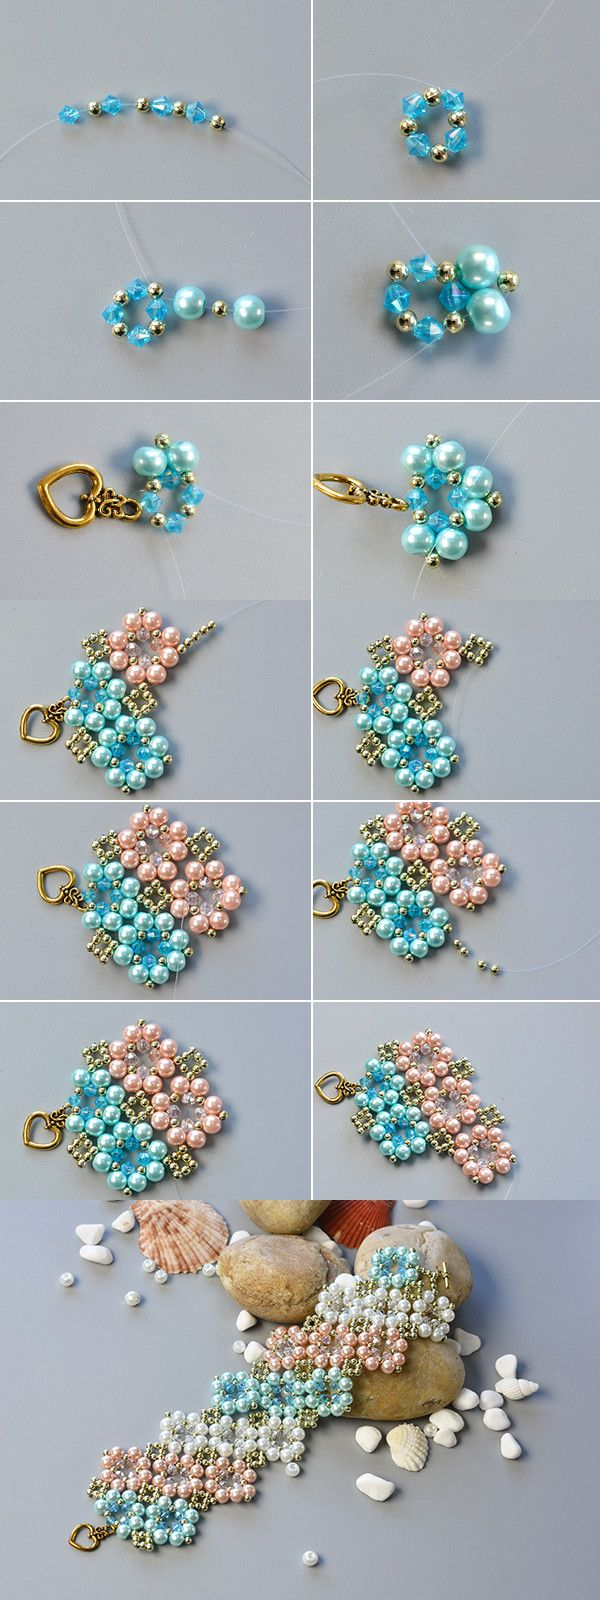 jewelry flower seeds beaded pinterest flowers patterns pattern on lincows bead for beads images spring free best necklace